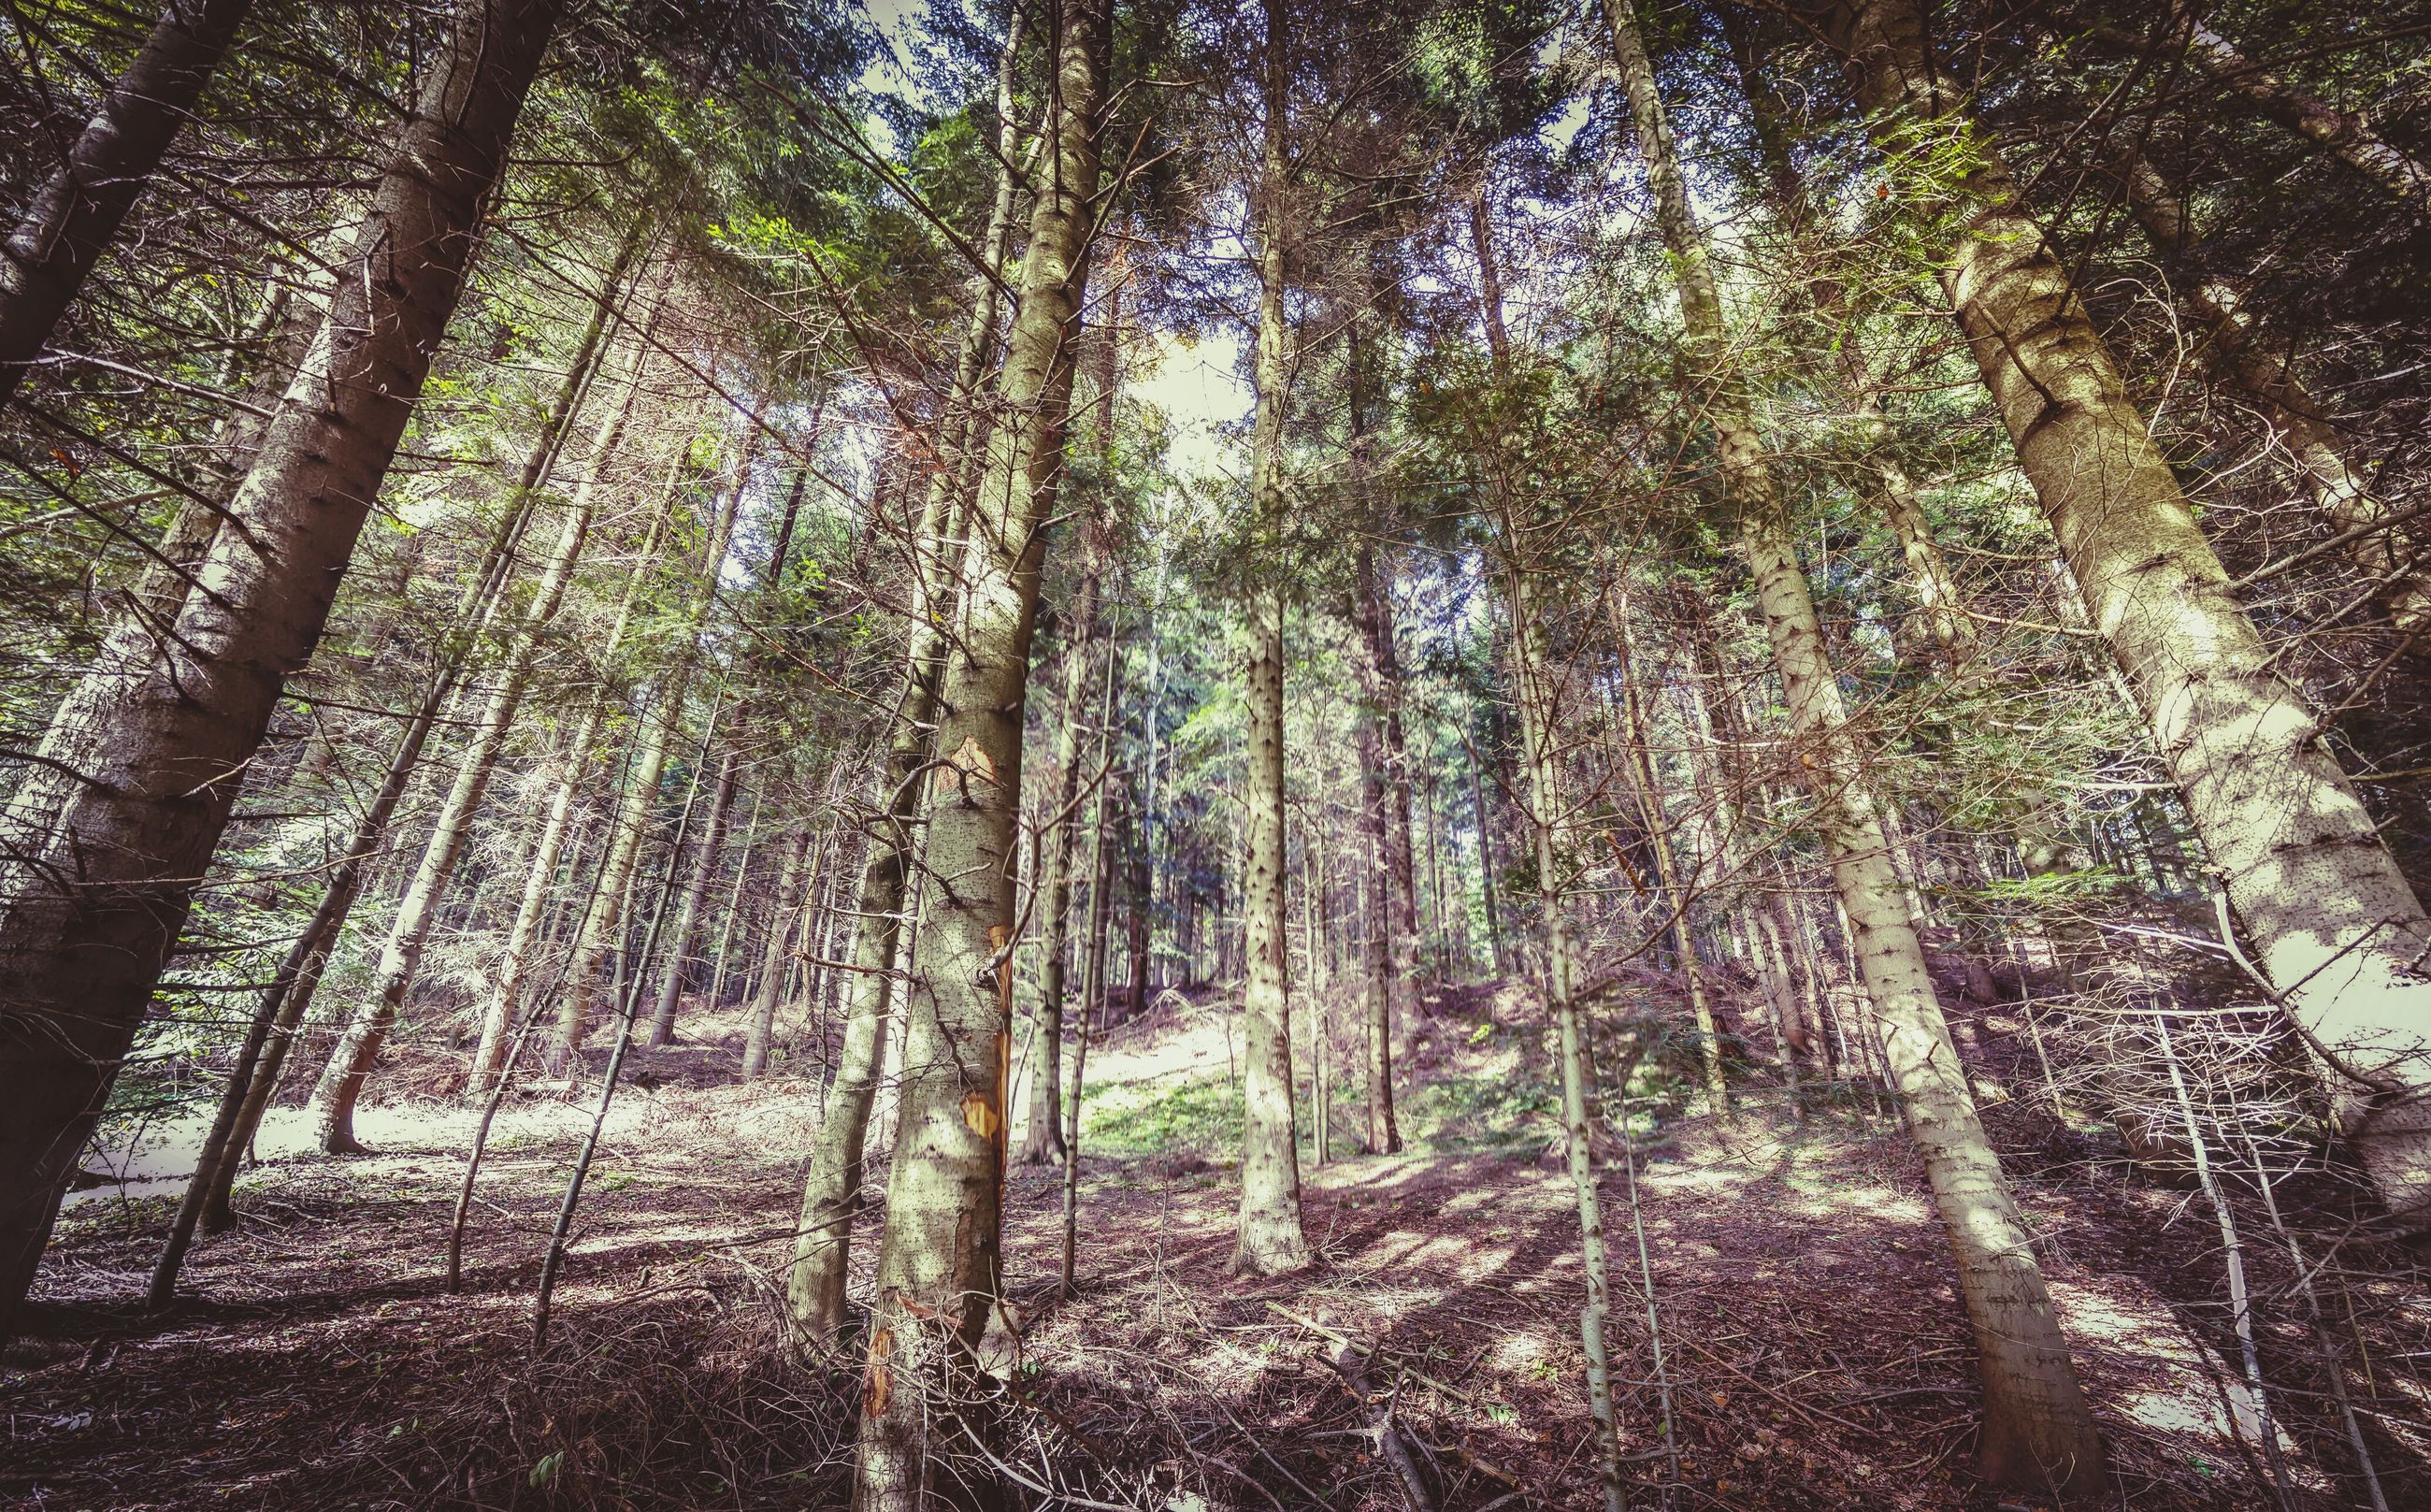 forest, tree trunk, tree, woodland, tranquil scene, tranquility, scenics, growth, low angle view, beauty in nature, nature, non-urban scene, landscape, tall - high, tall, branch, day, abundance, outdoors, solitude, green, remote, woods